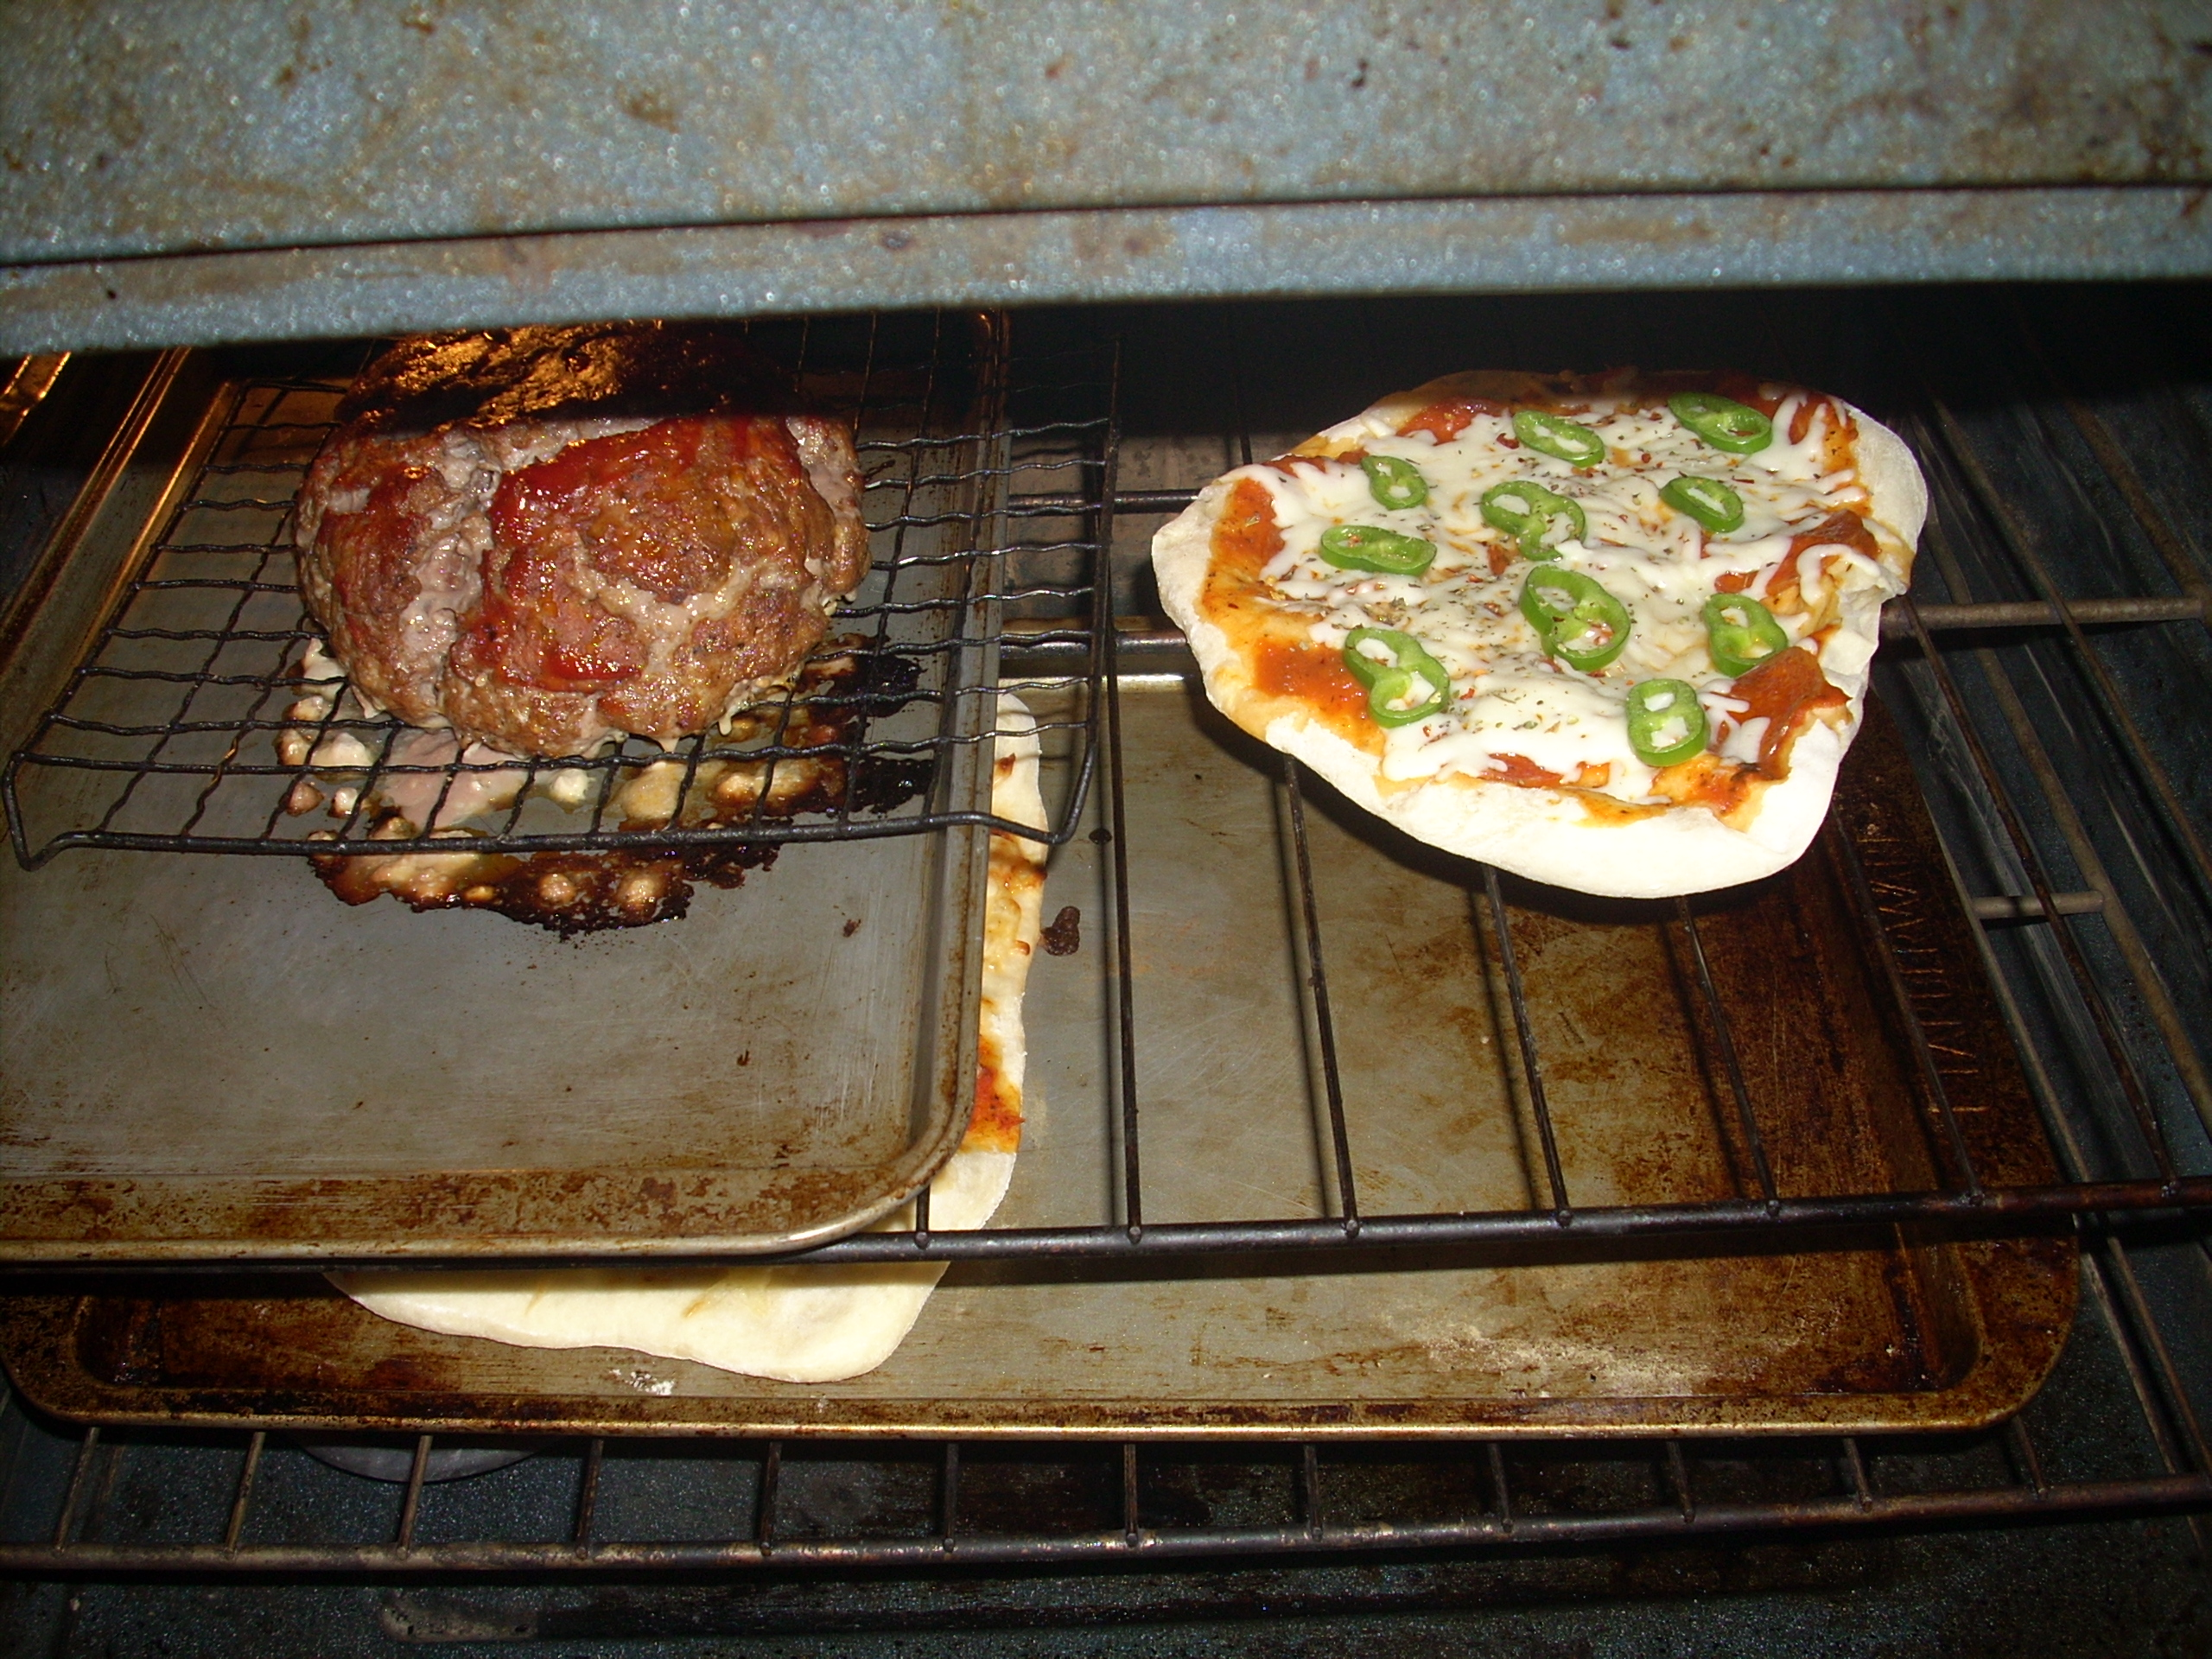 multi-tasking in the oven! There's Tony's meatloaf on the left!